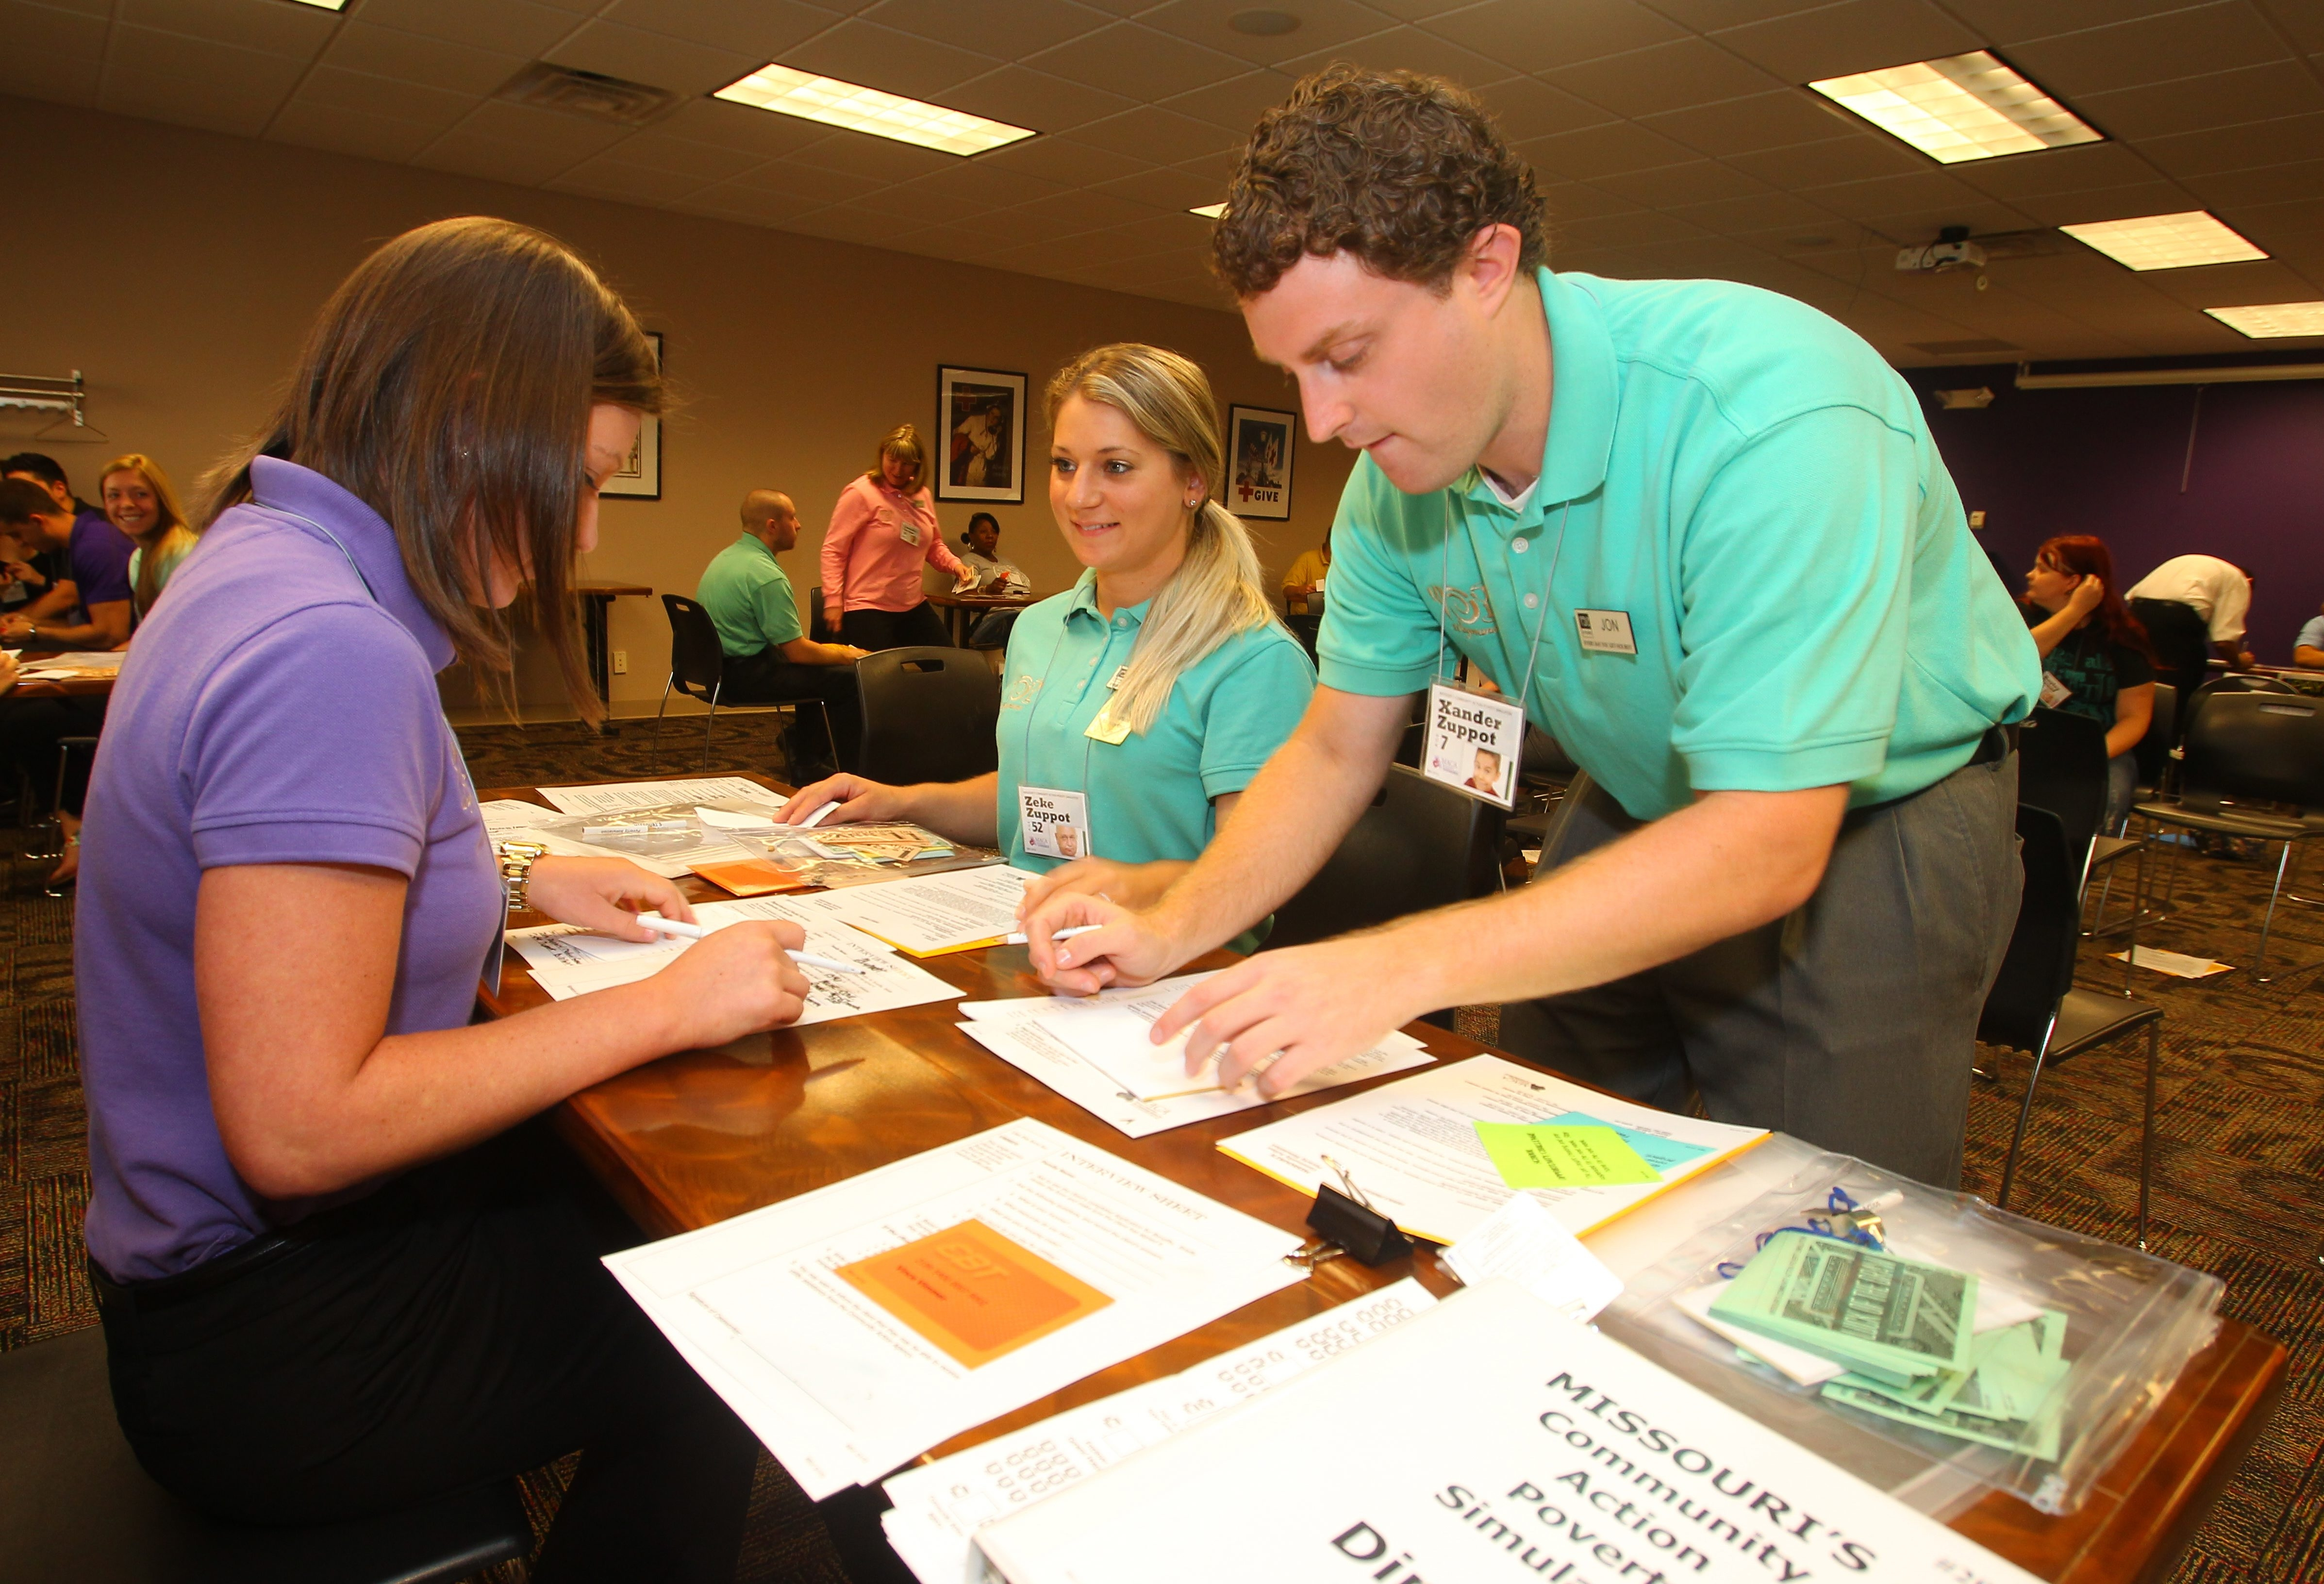 Lisa Boneberg, left, a Wegmans meat manager, plays the role of a social services case worker working with Angela D'Orazio, a Wegmans cashier, and Jon Paeplow, a Wegmans front end manager, in a workshop Monday.